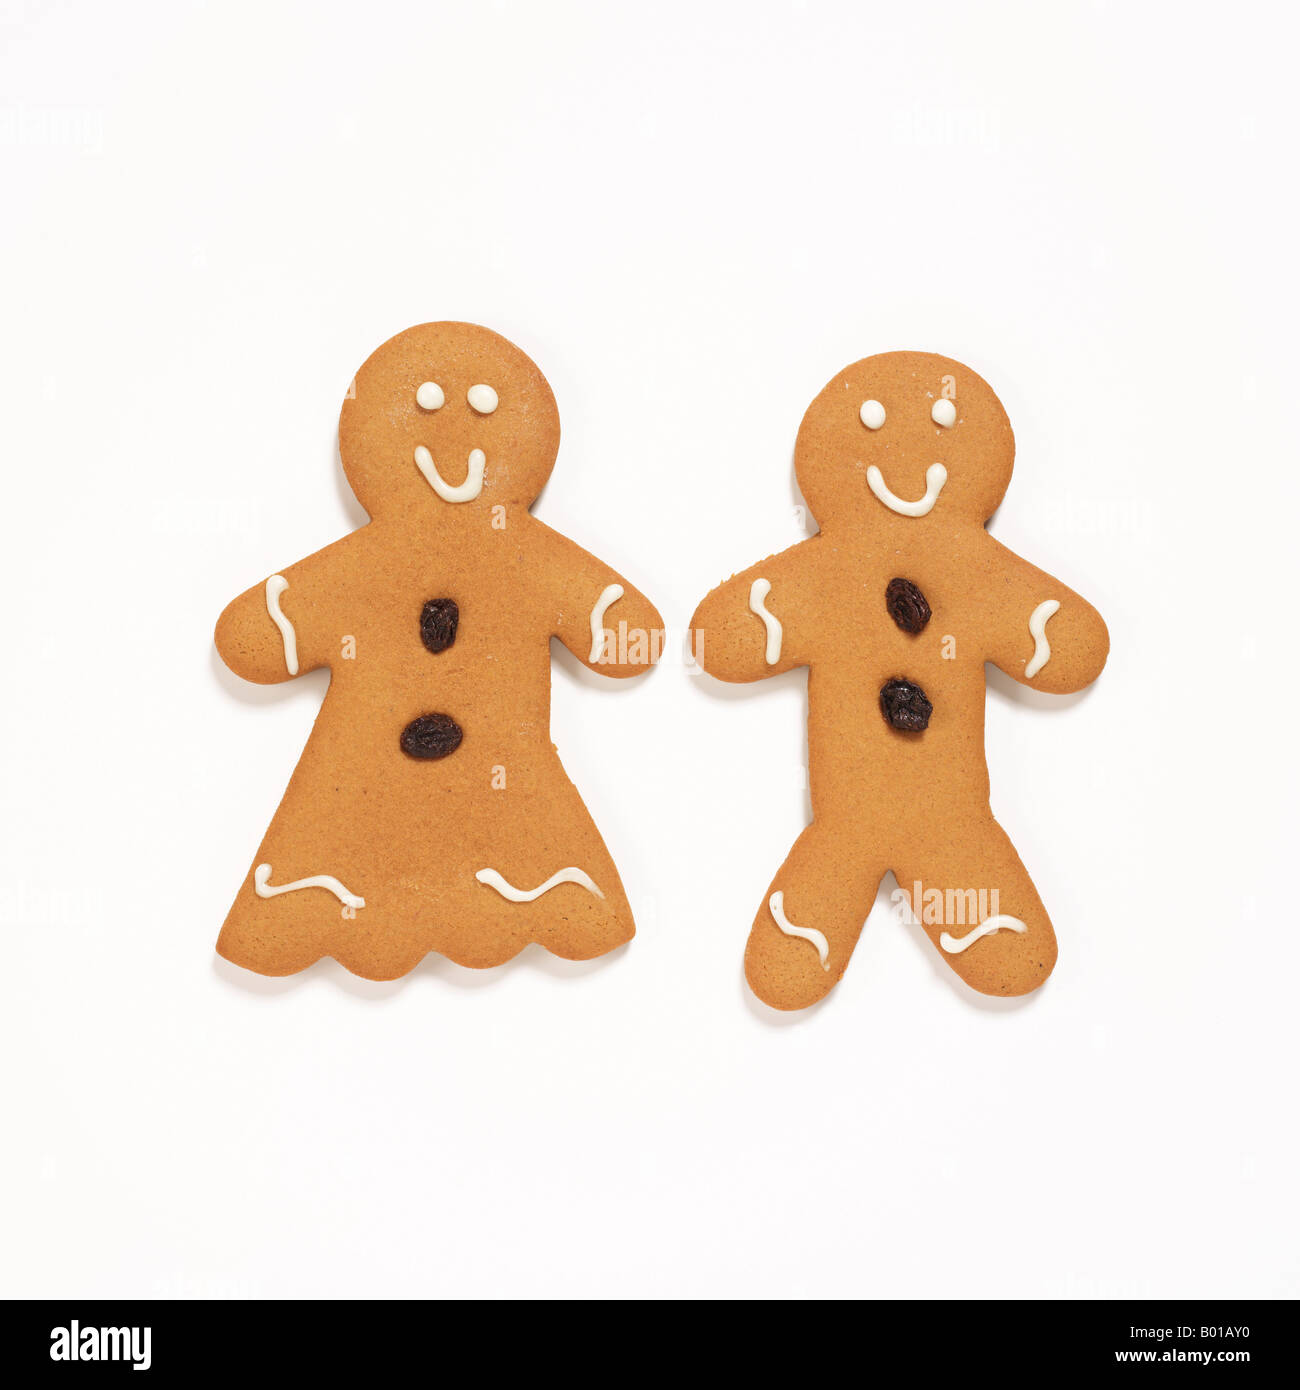 Gingerbread cookie Immagini Stock